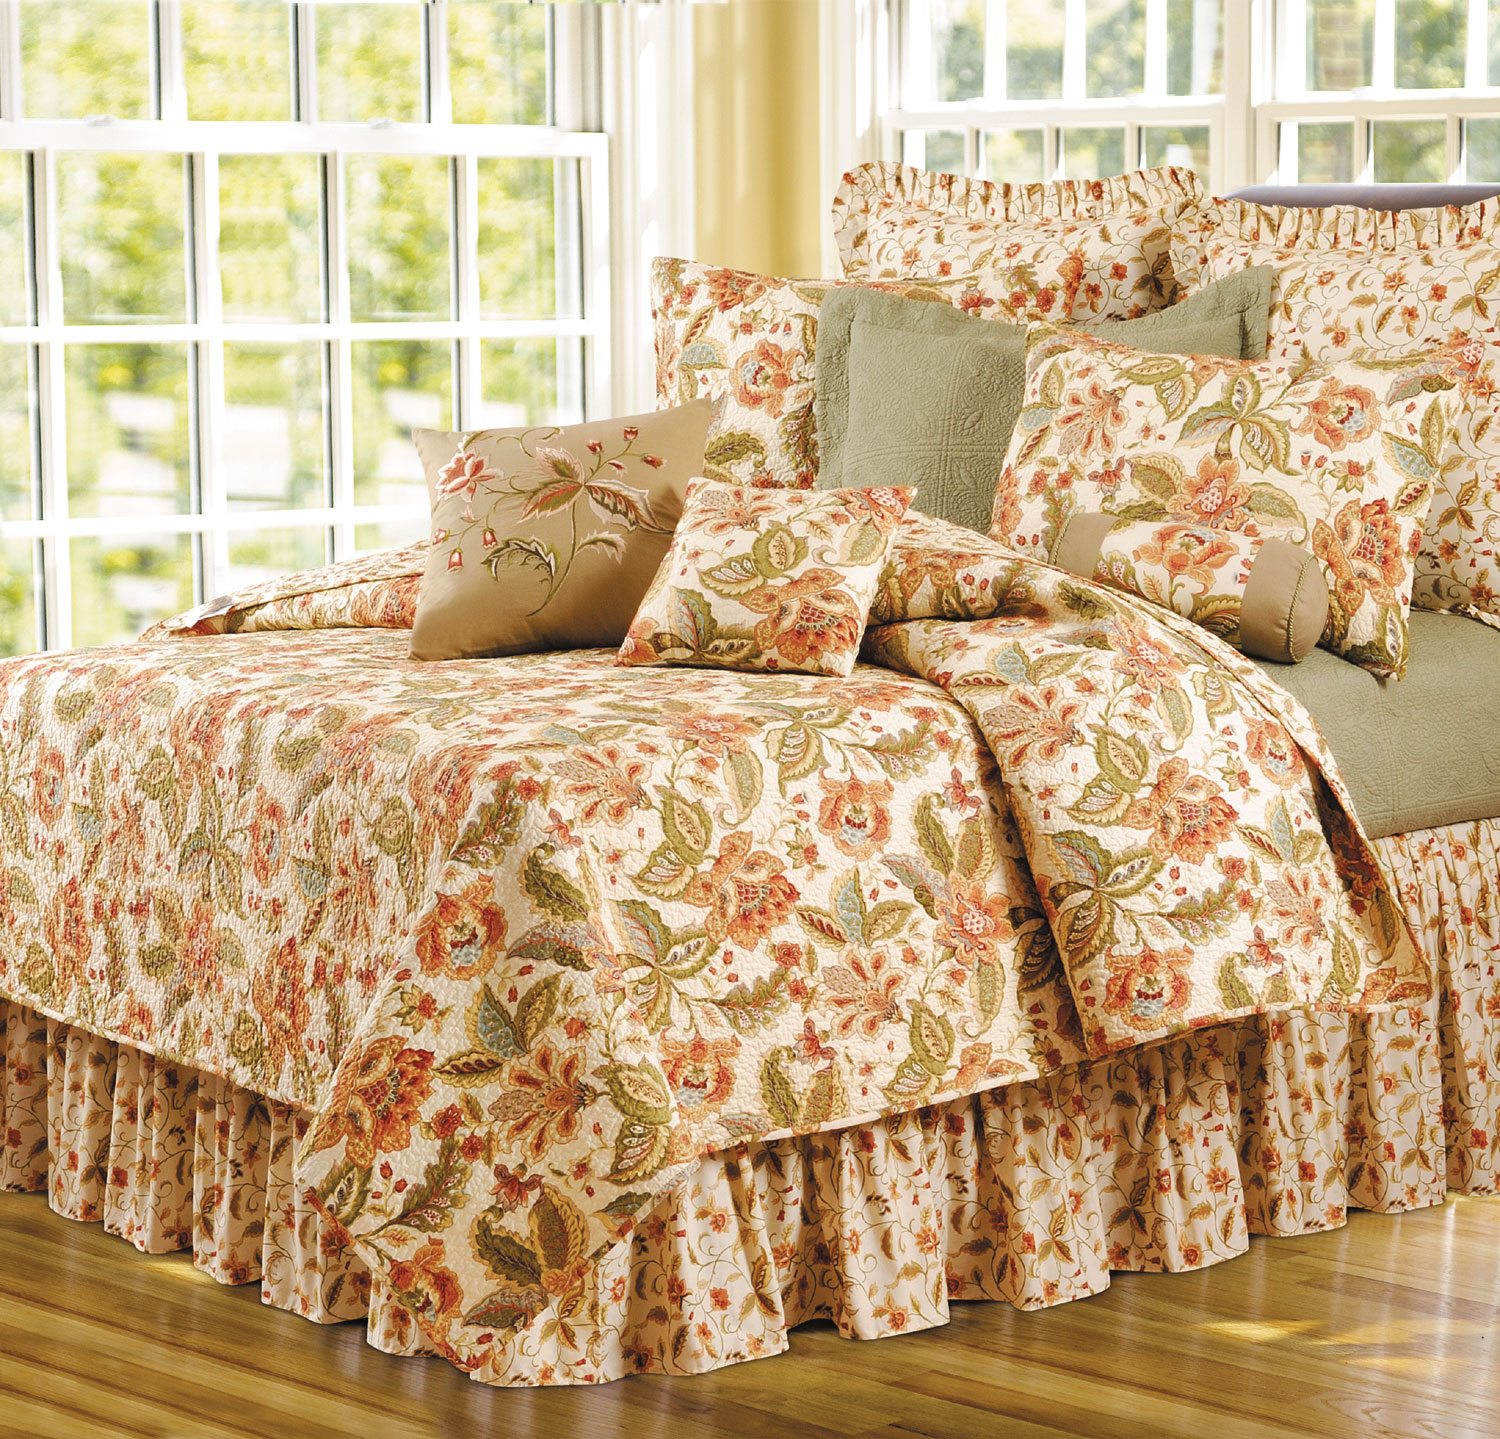 Amelia By C Amp F Quilts Beddingsuperstore Com